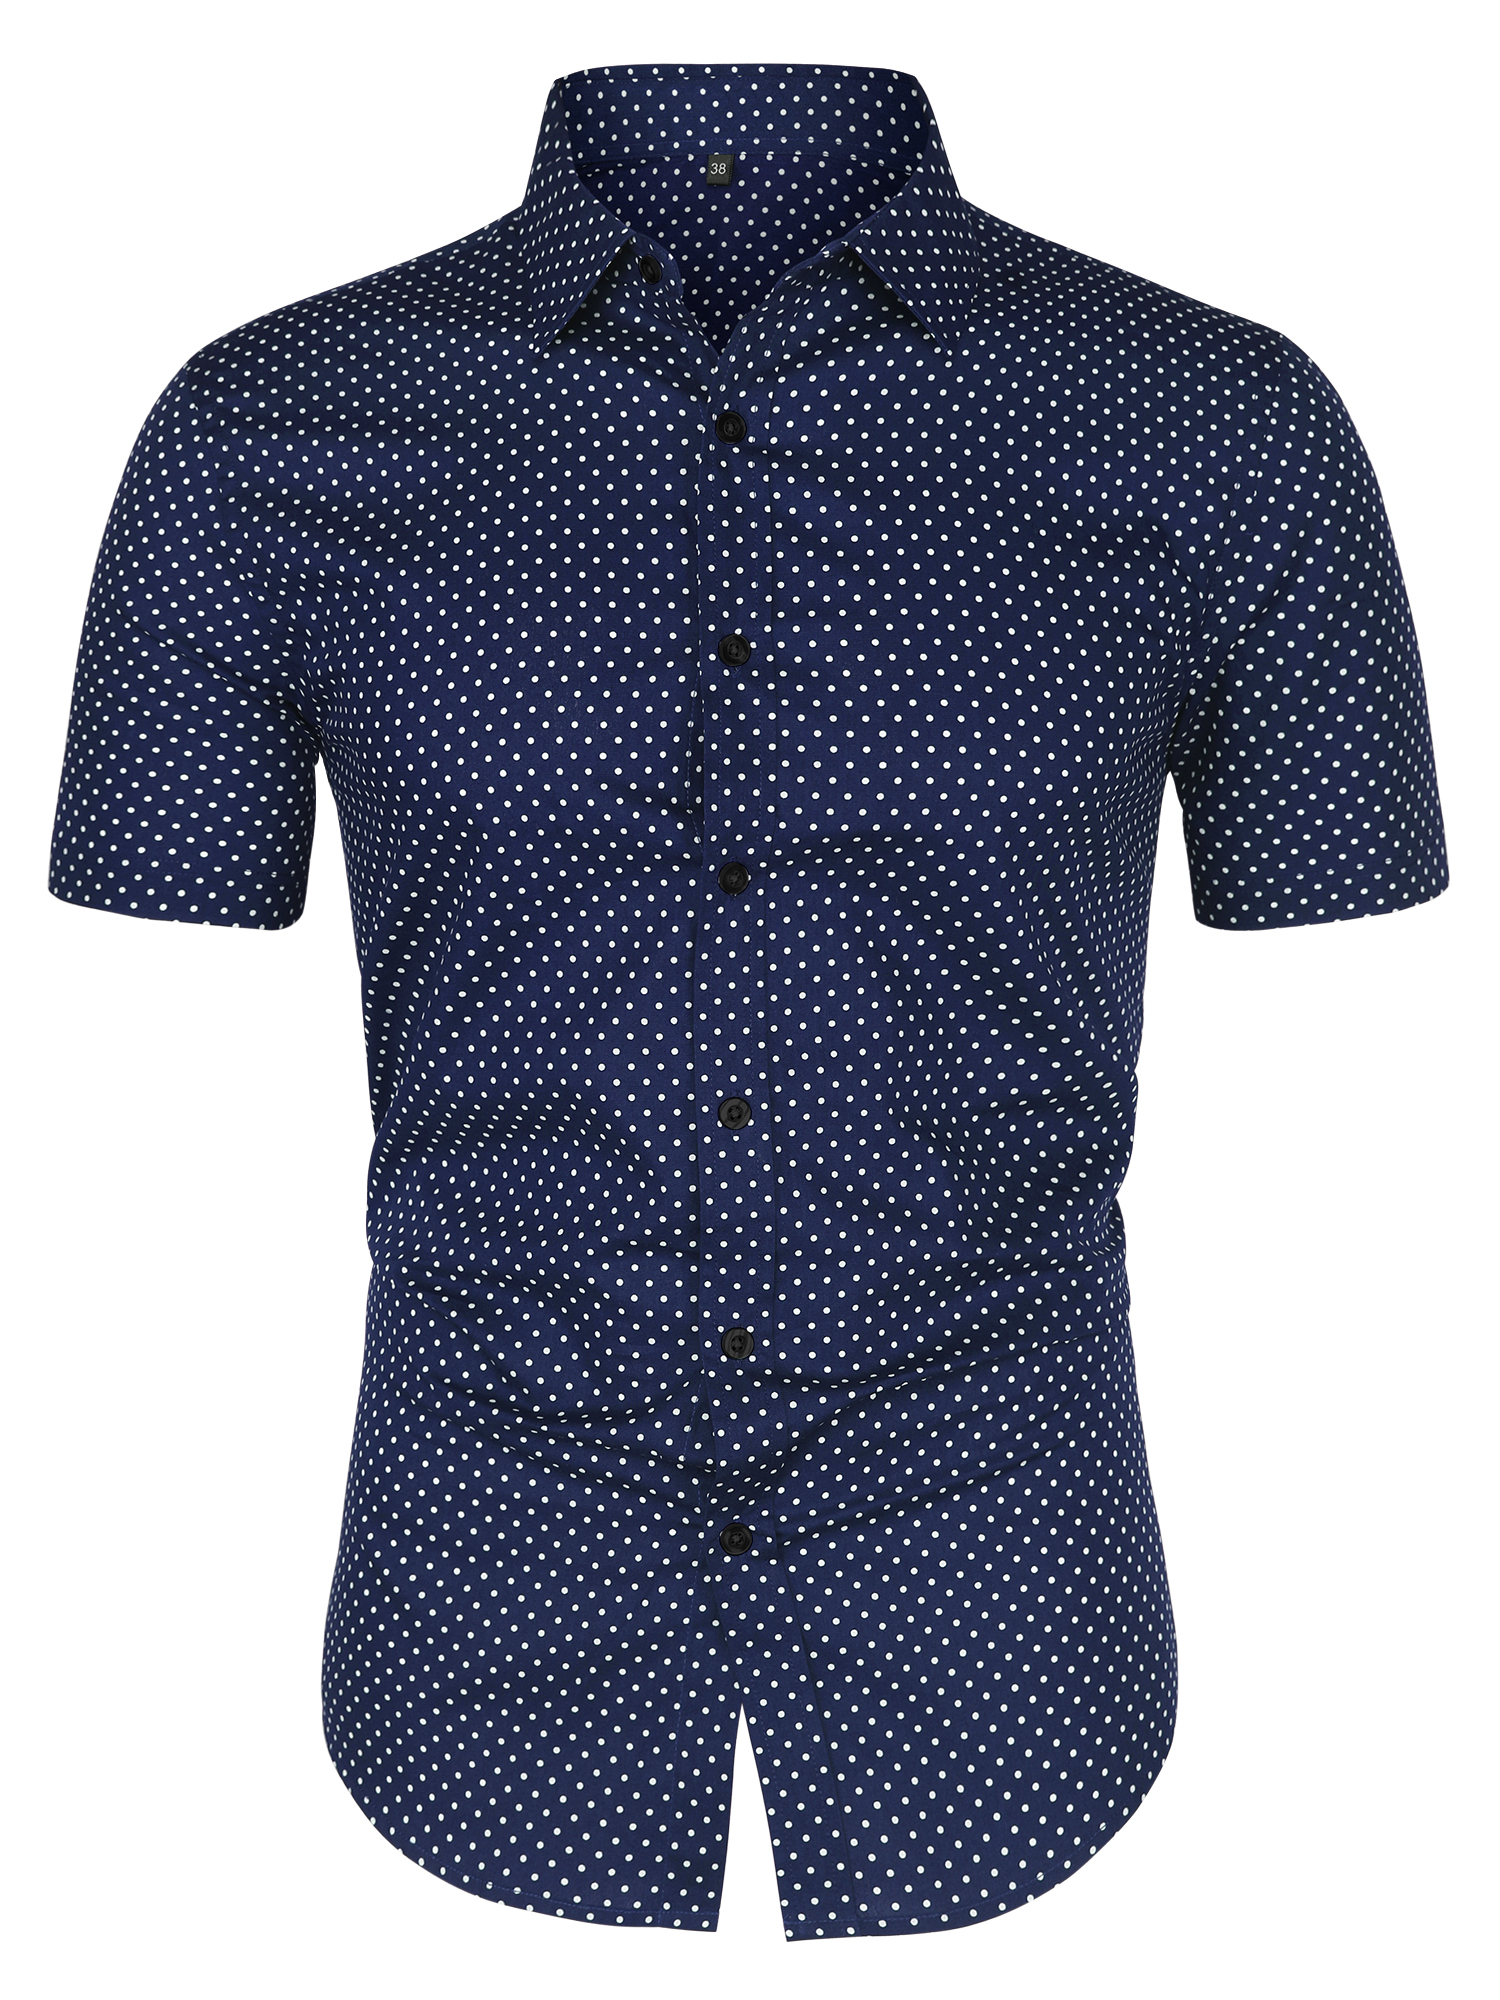 Men Short Sleeves Single Breasted Cotton Dots Shirt Blue M